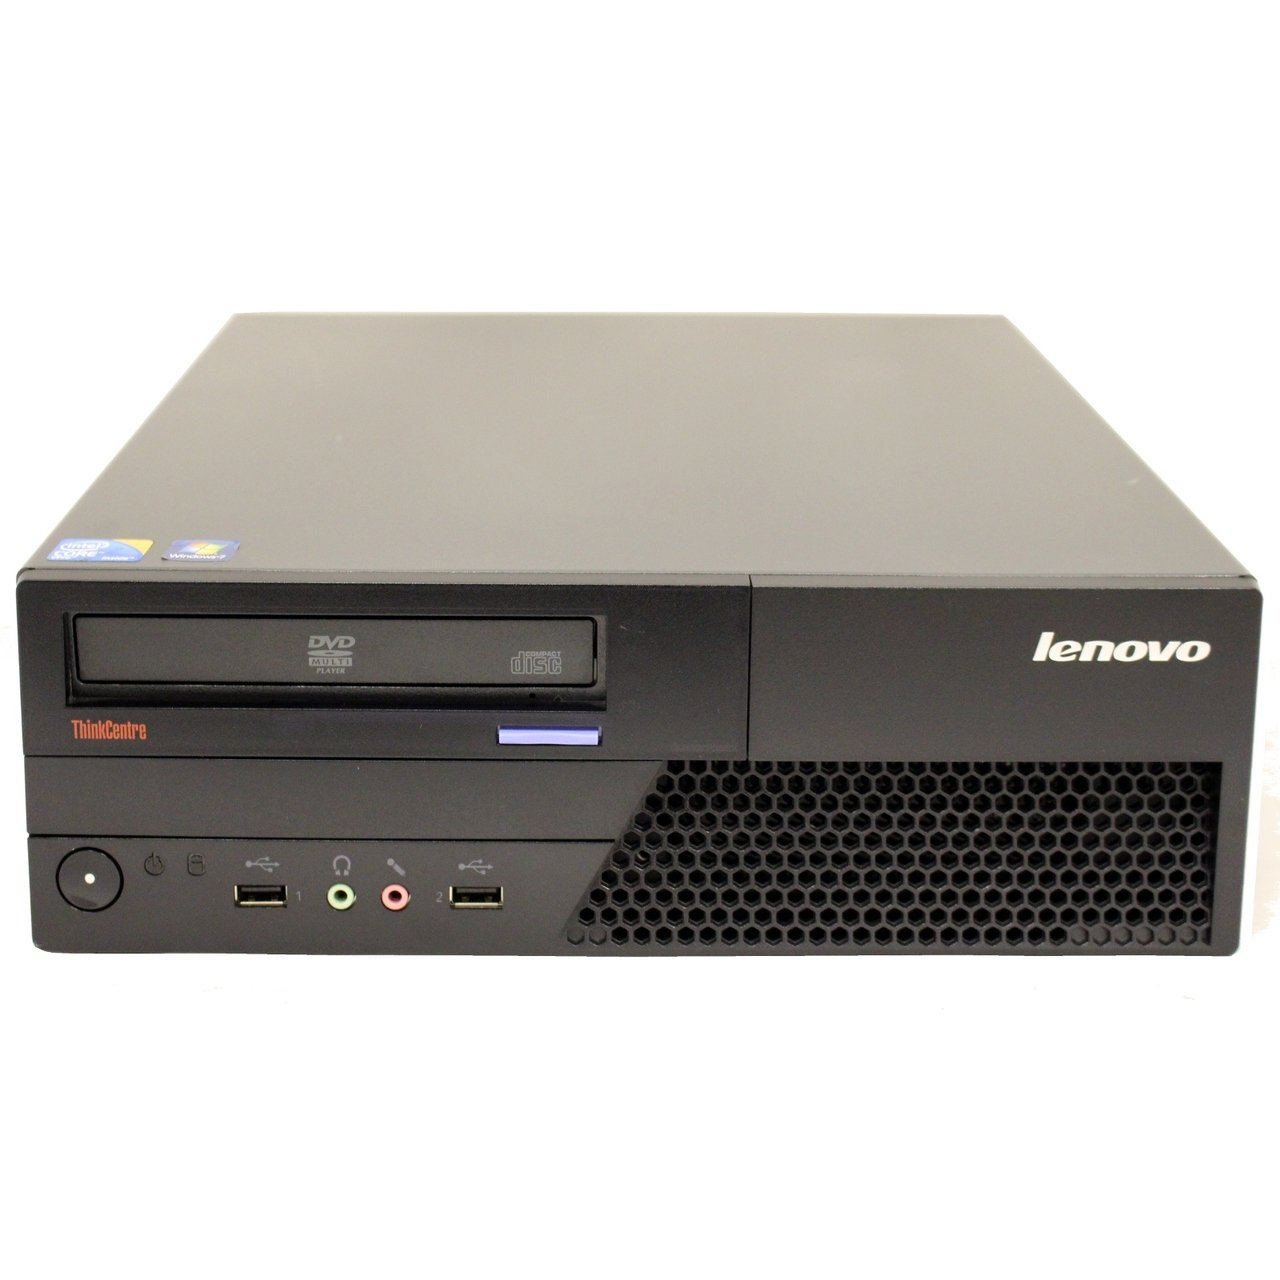 Lenovo ThinkCentre M58 Premium Small Form Factor Business Desktop Computer PC (Intel Core 2 Duo 3.0GHz, 4GB RAM, 160GB HDD, Wireless WIFI) Windows 10 Professional (Certified Refurbished) by Lenovo (Image #2)